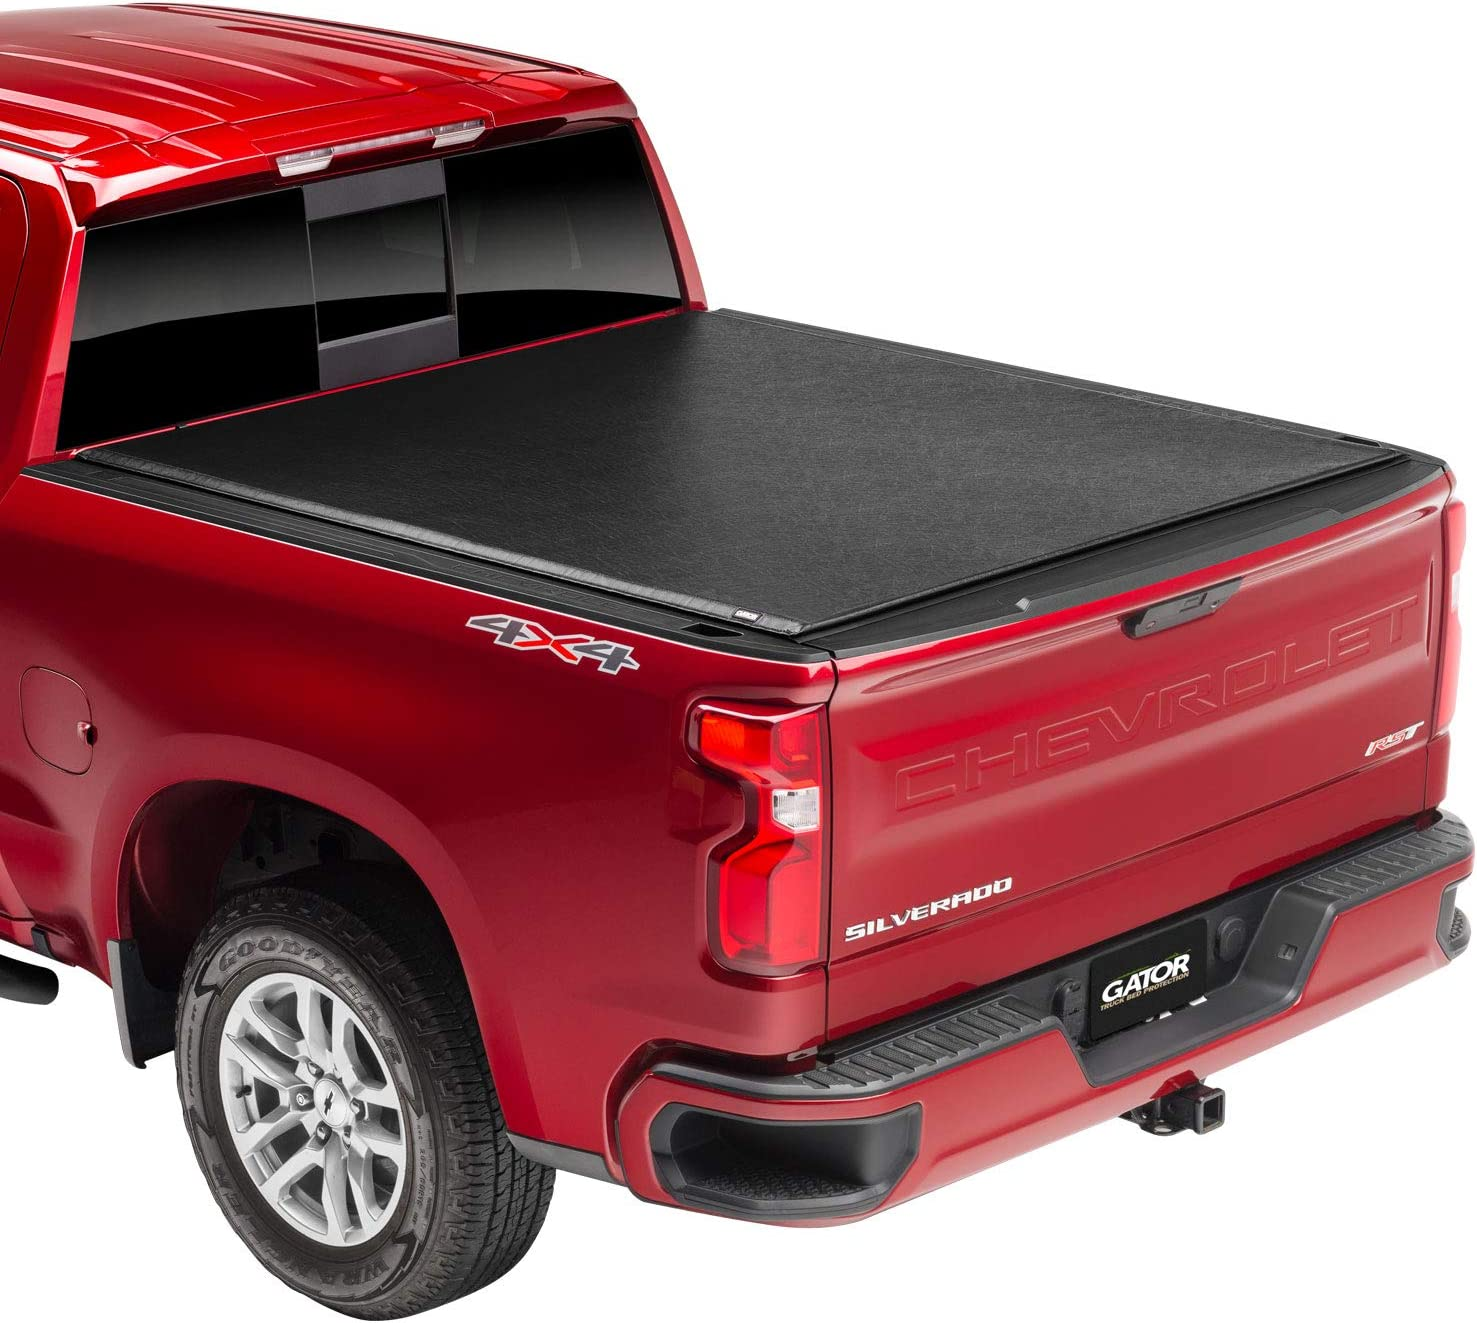 Amazon Com Gator Etx Soft Roll Up Truck Bed Tonneau Cover 53109 Fits 2014 2018 2019 Ltd Lgcy Gmc Sierra Chevrolet Silverado 1500 5 8 Bed Bed Made In The Usa Automotive